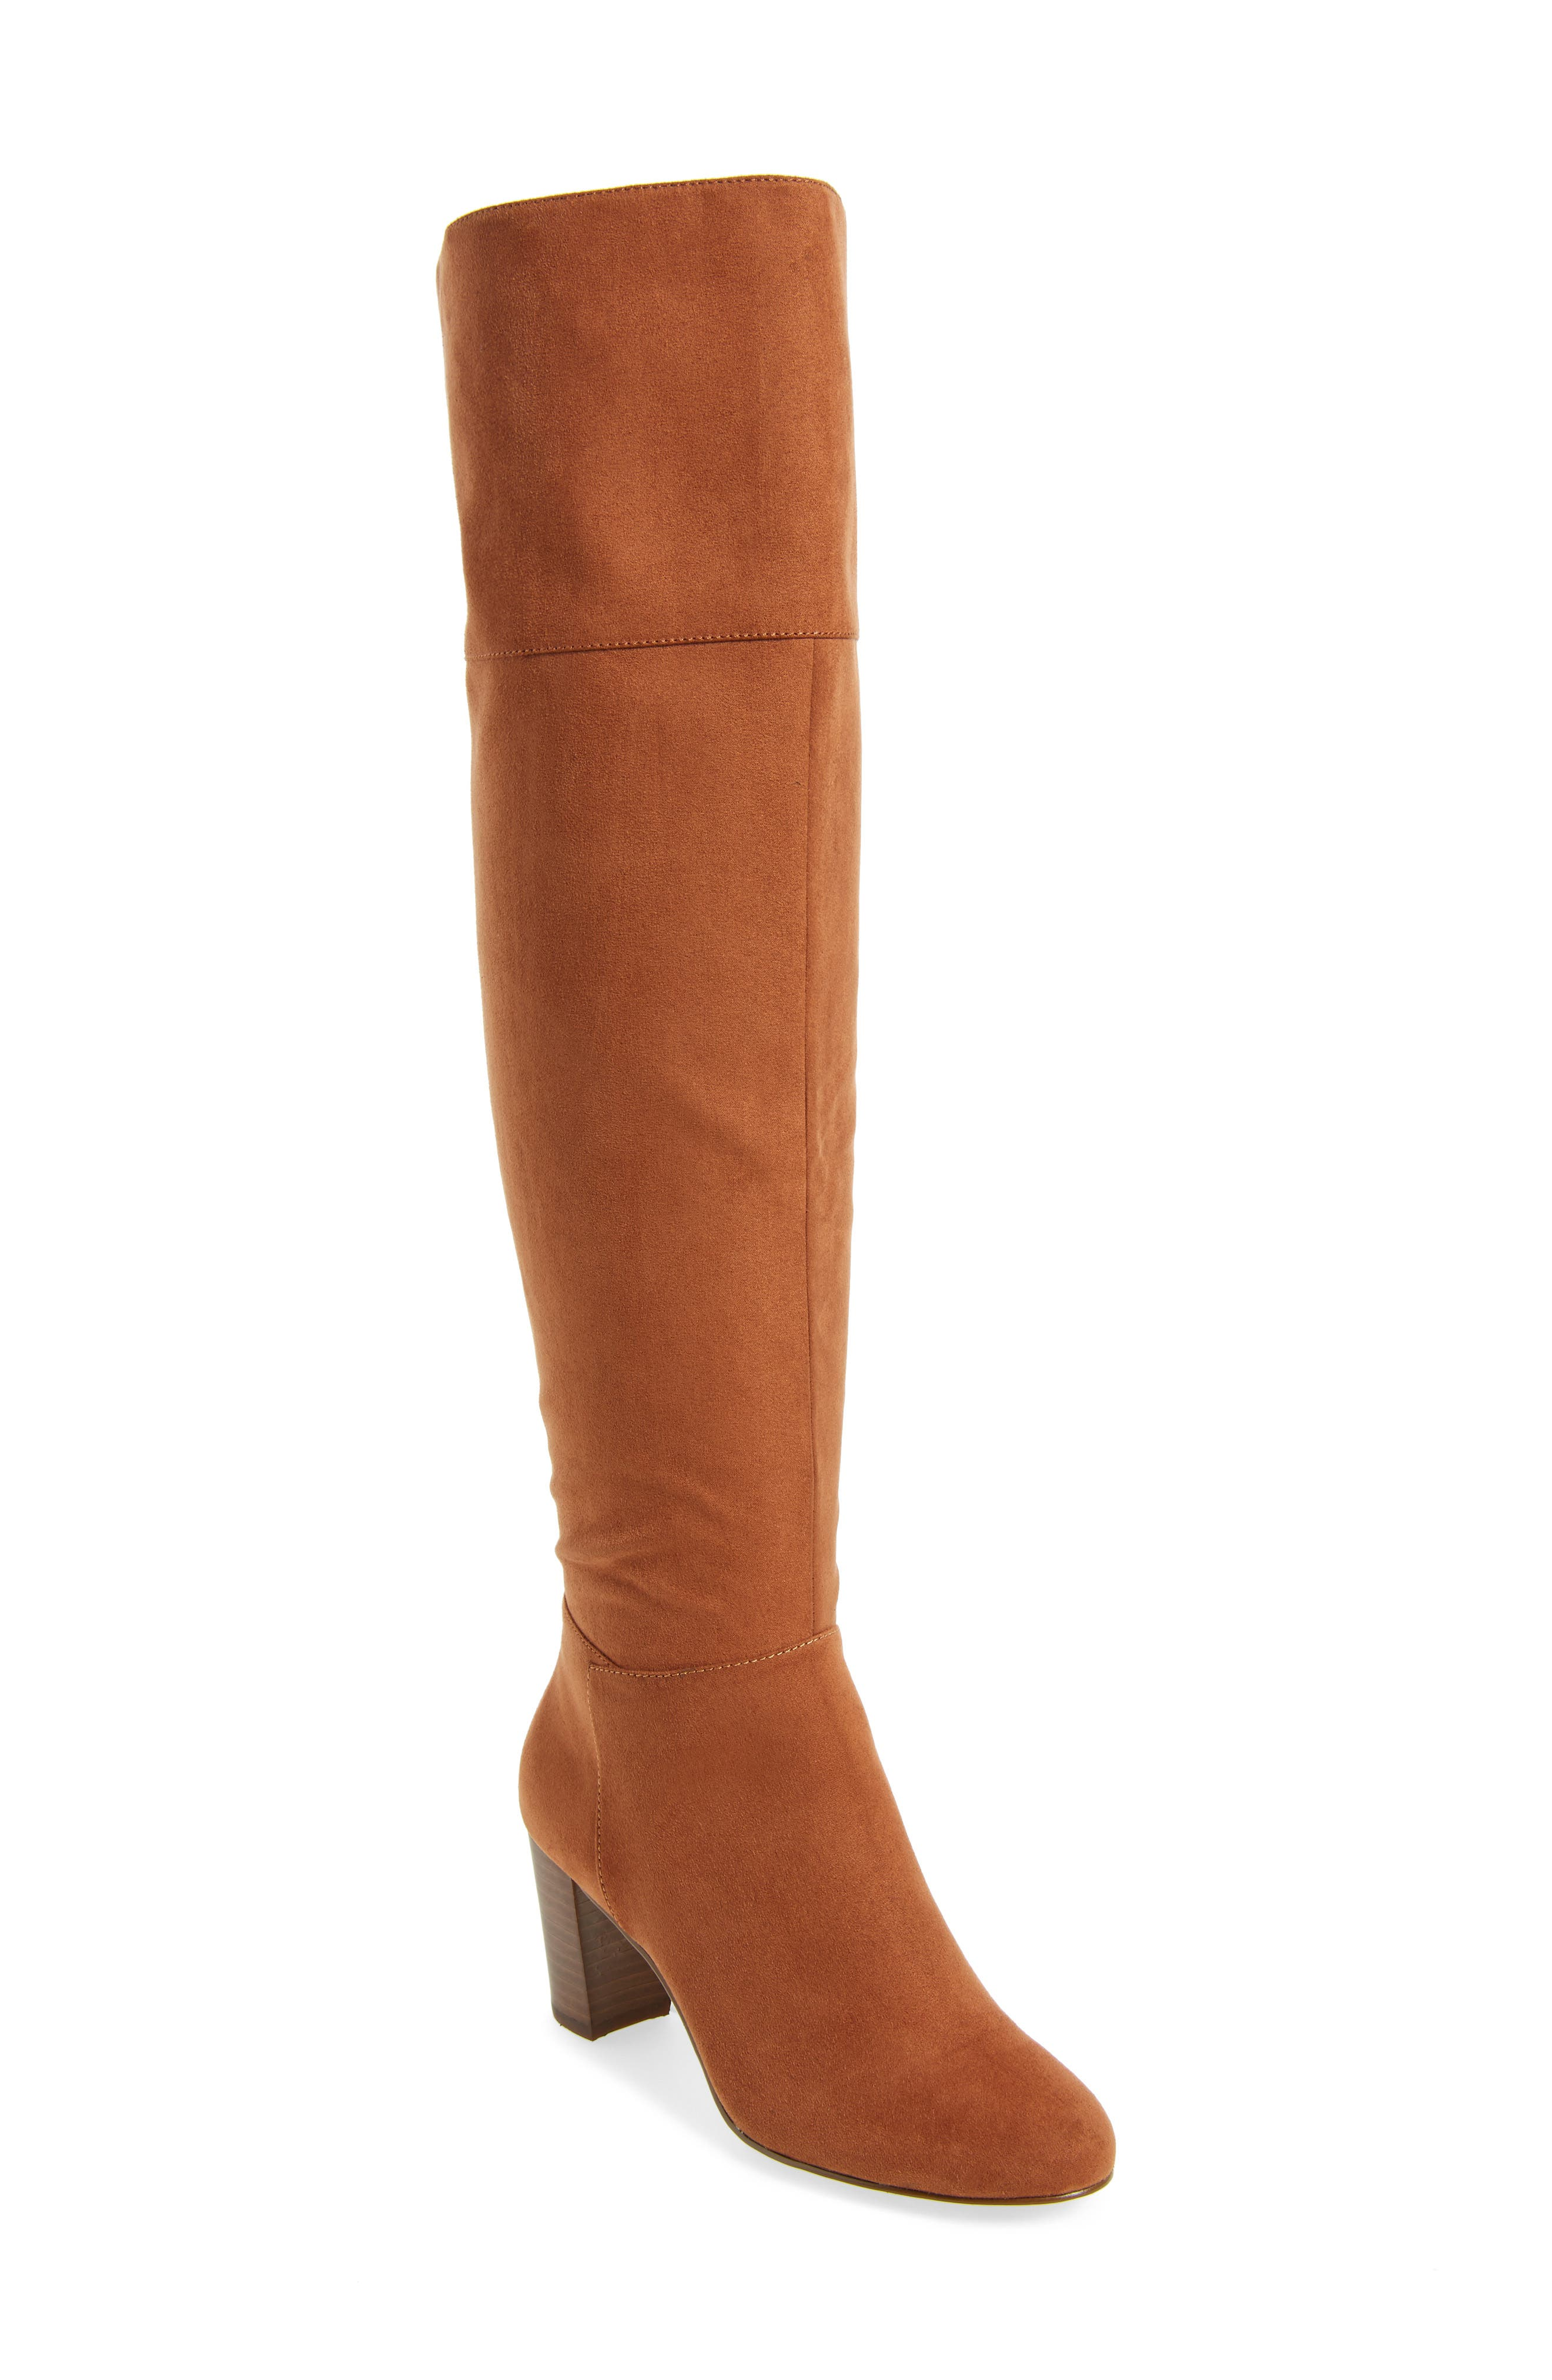 Telluride II Over the Knee Boot,                         Main,                         color, Camel Suede